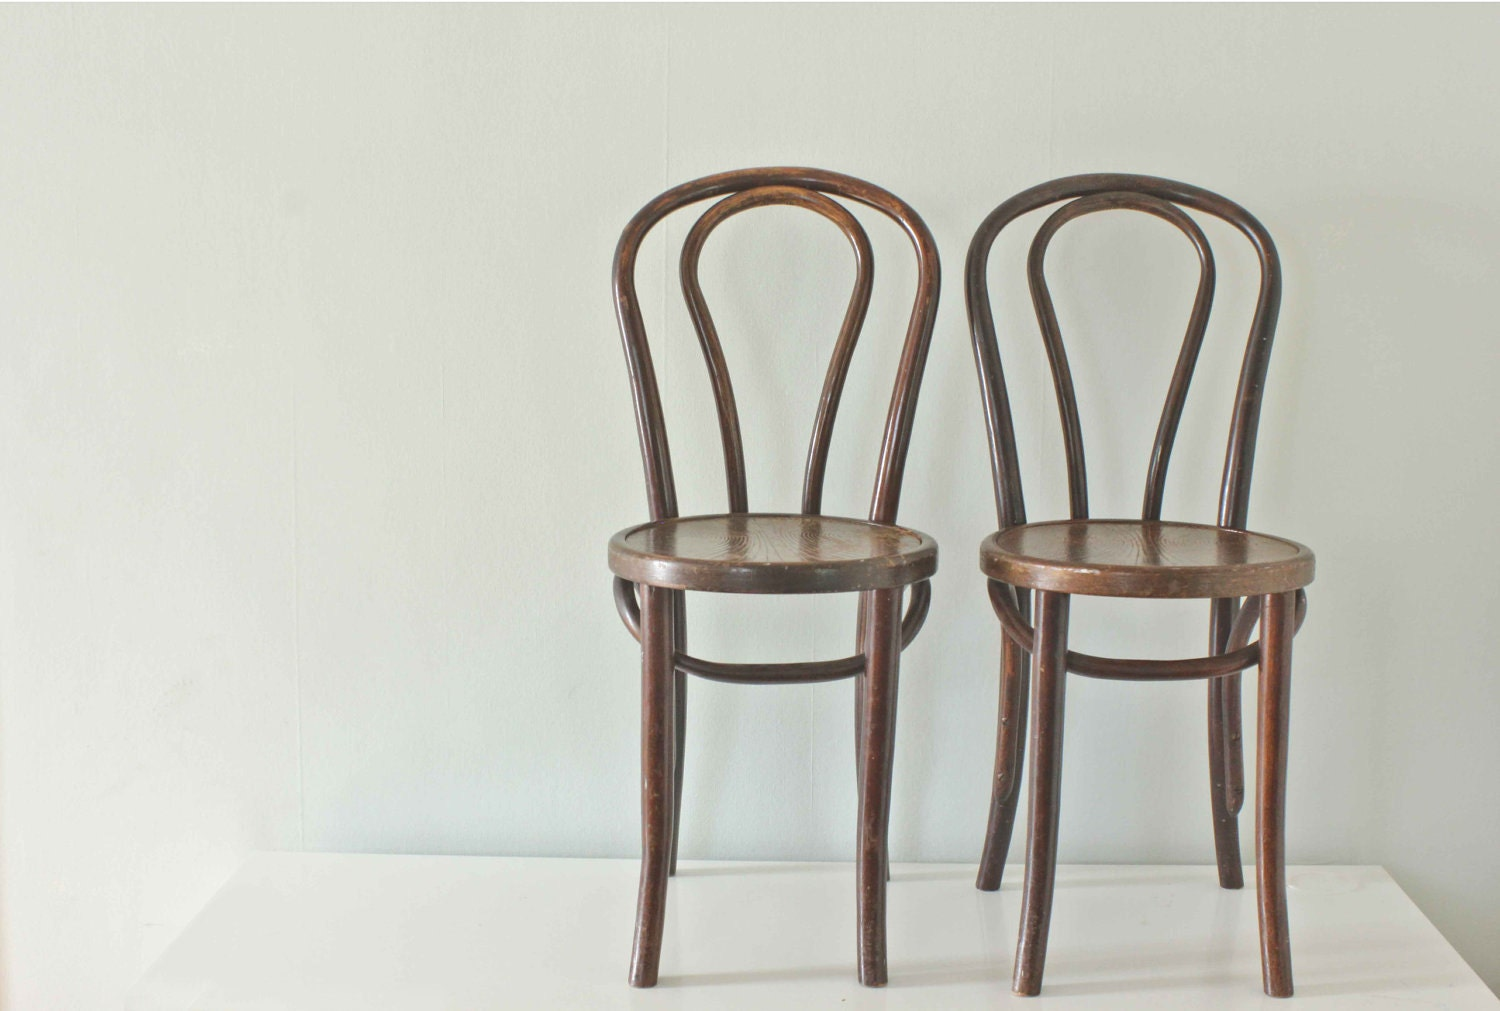 Wood Bistro Table And Chairs ~ Wood bistro chairs thonet style bentwood by